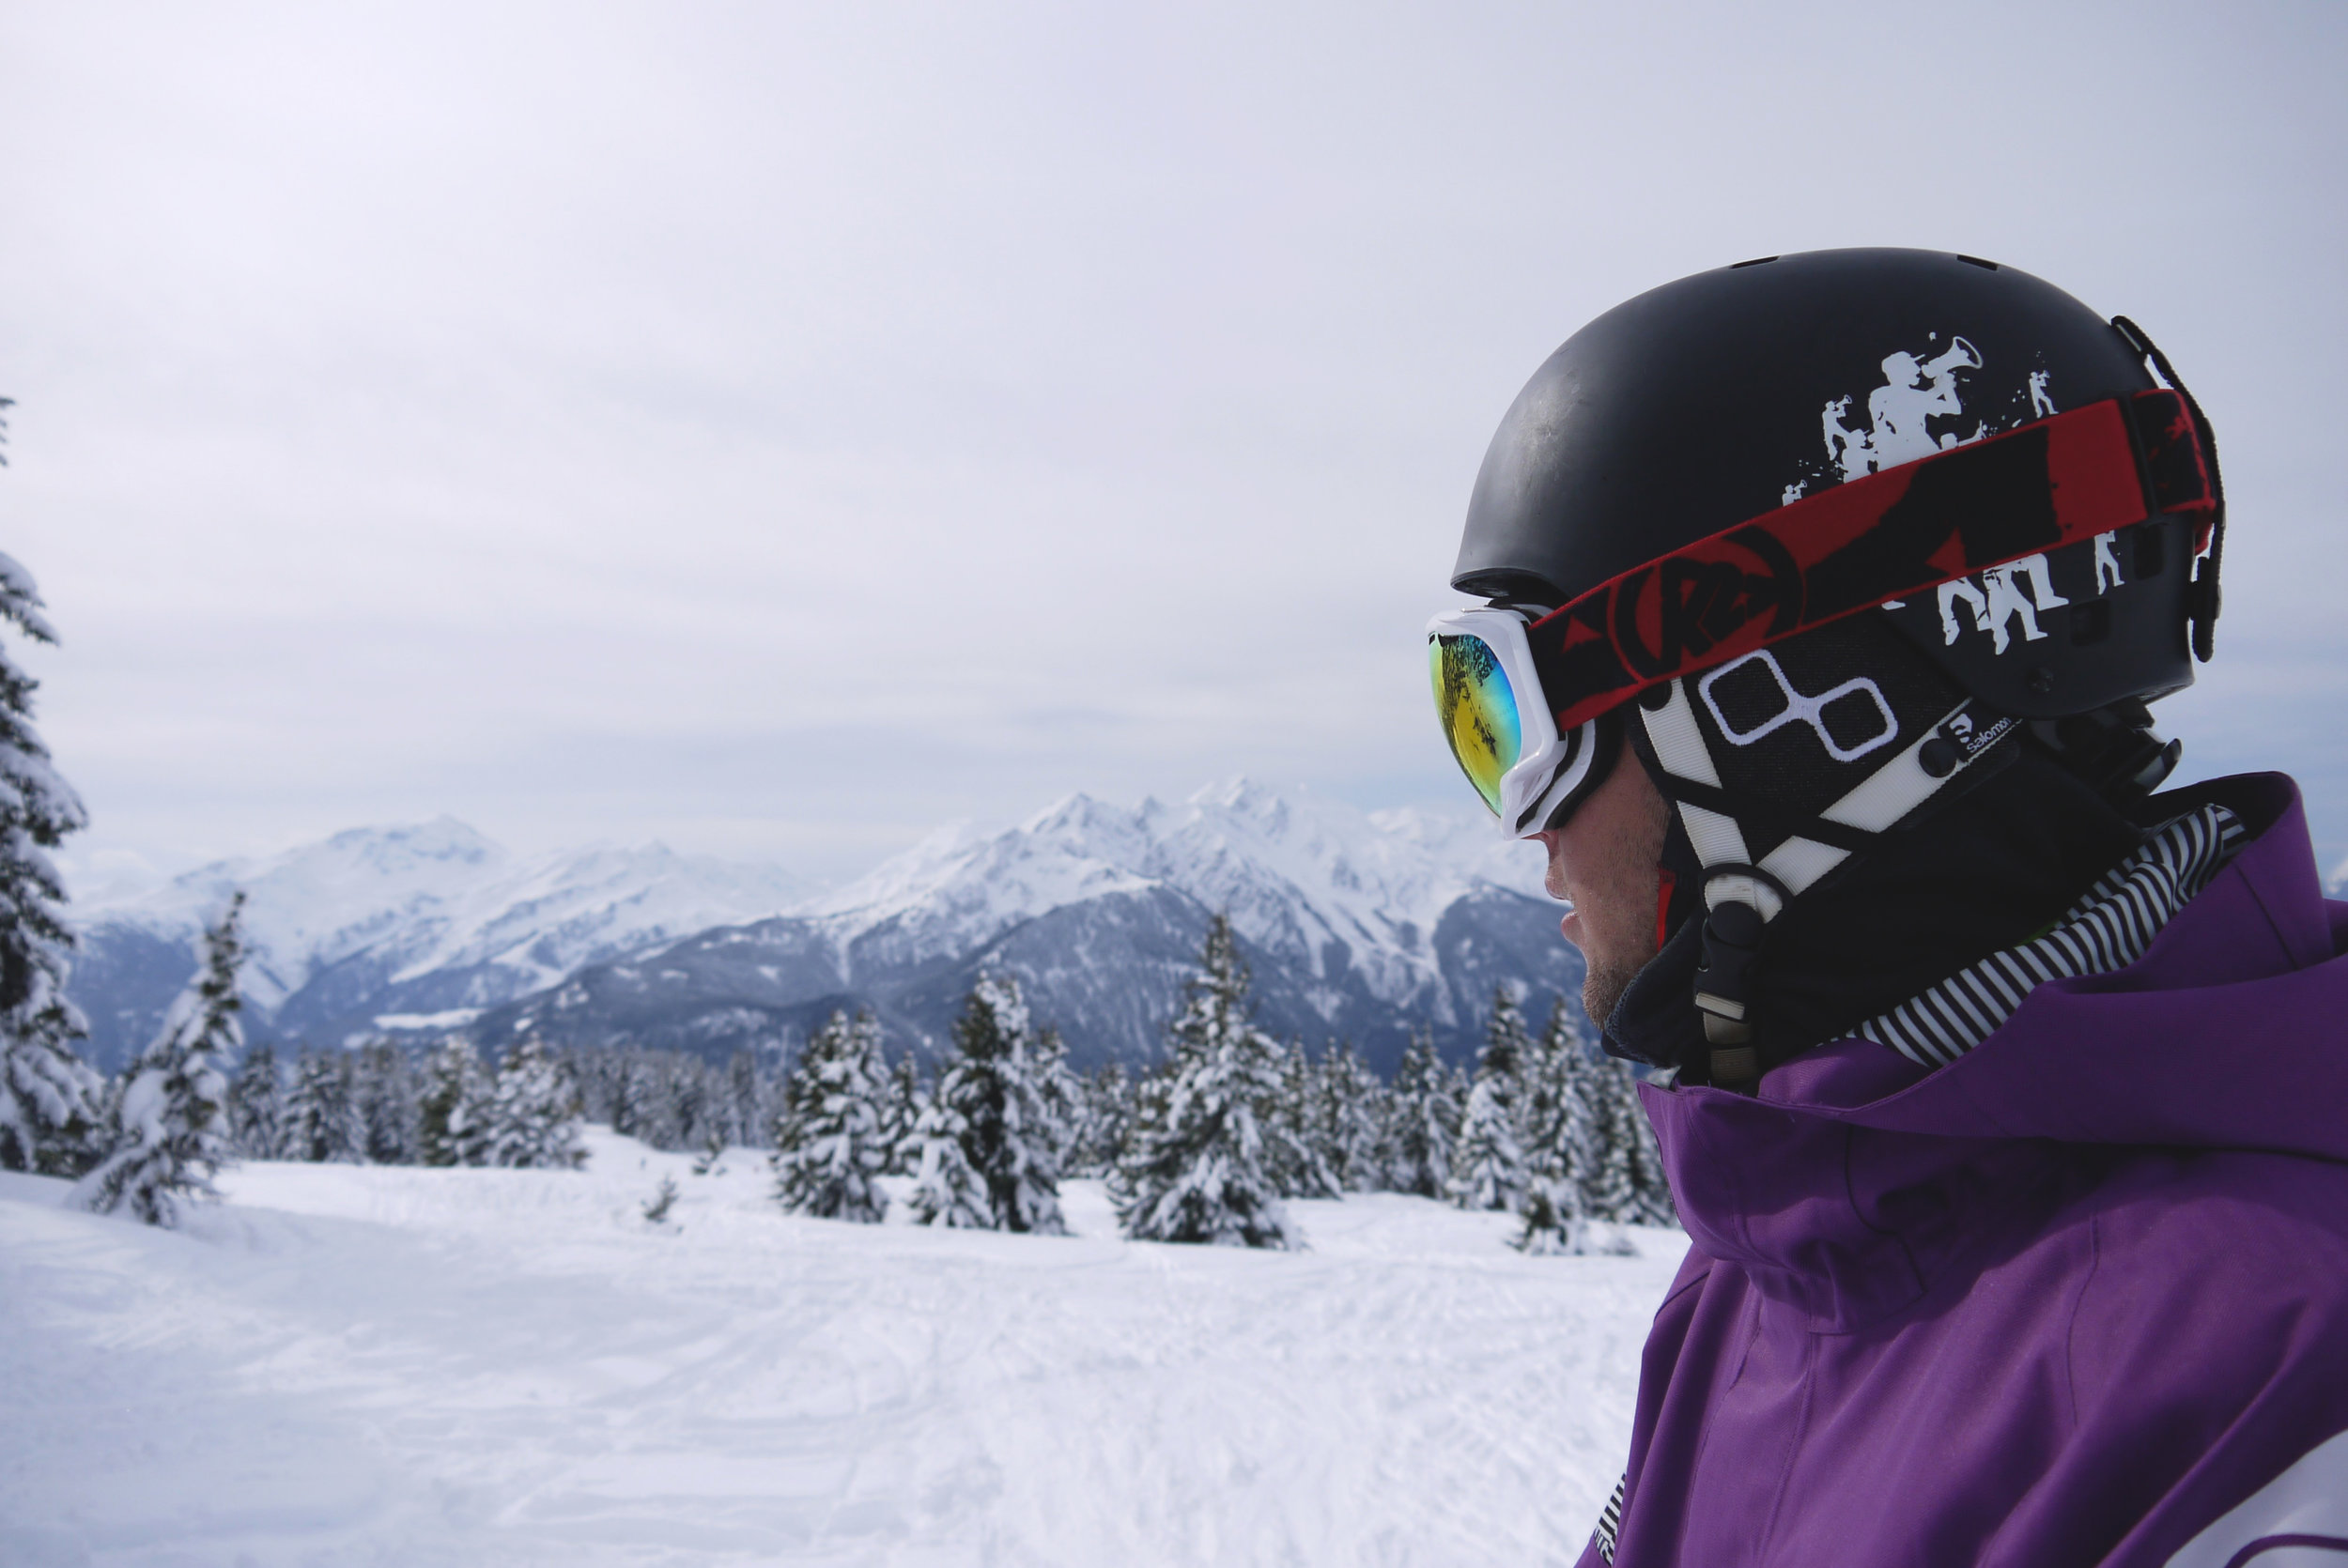 winter park ski resort - Voted # 1 USA Today's Best Ski Resort in North America10 minute drive from our shop